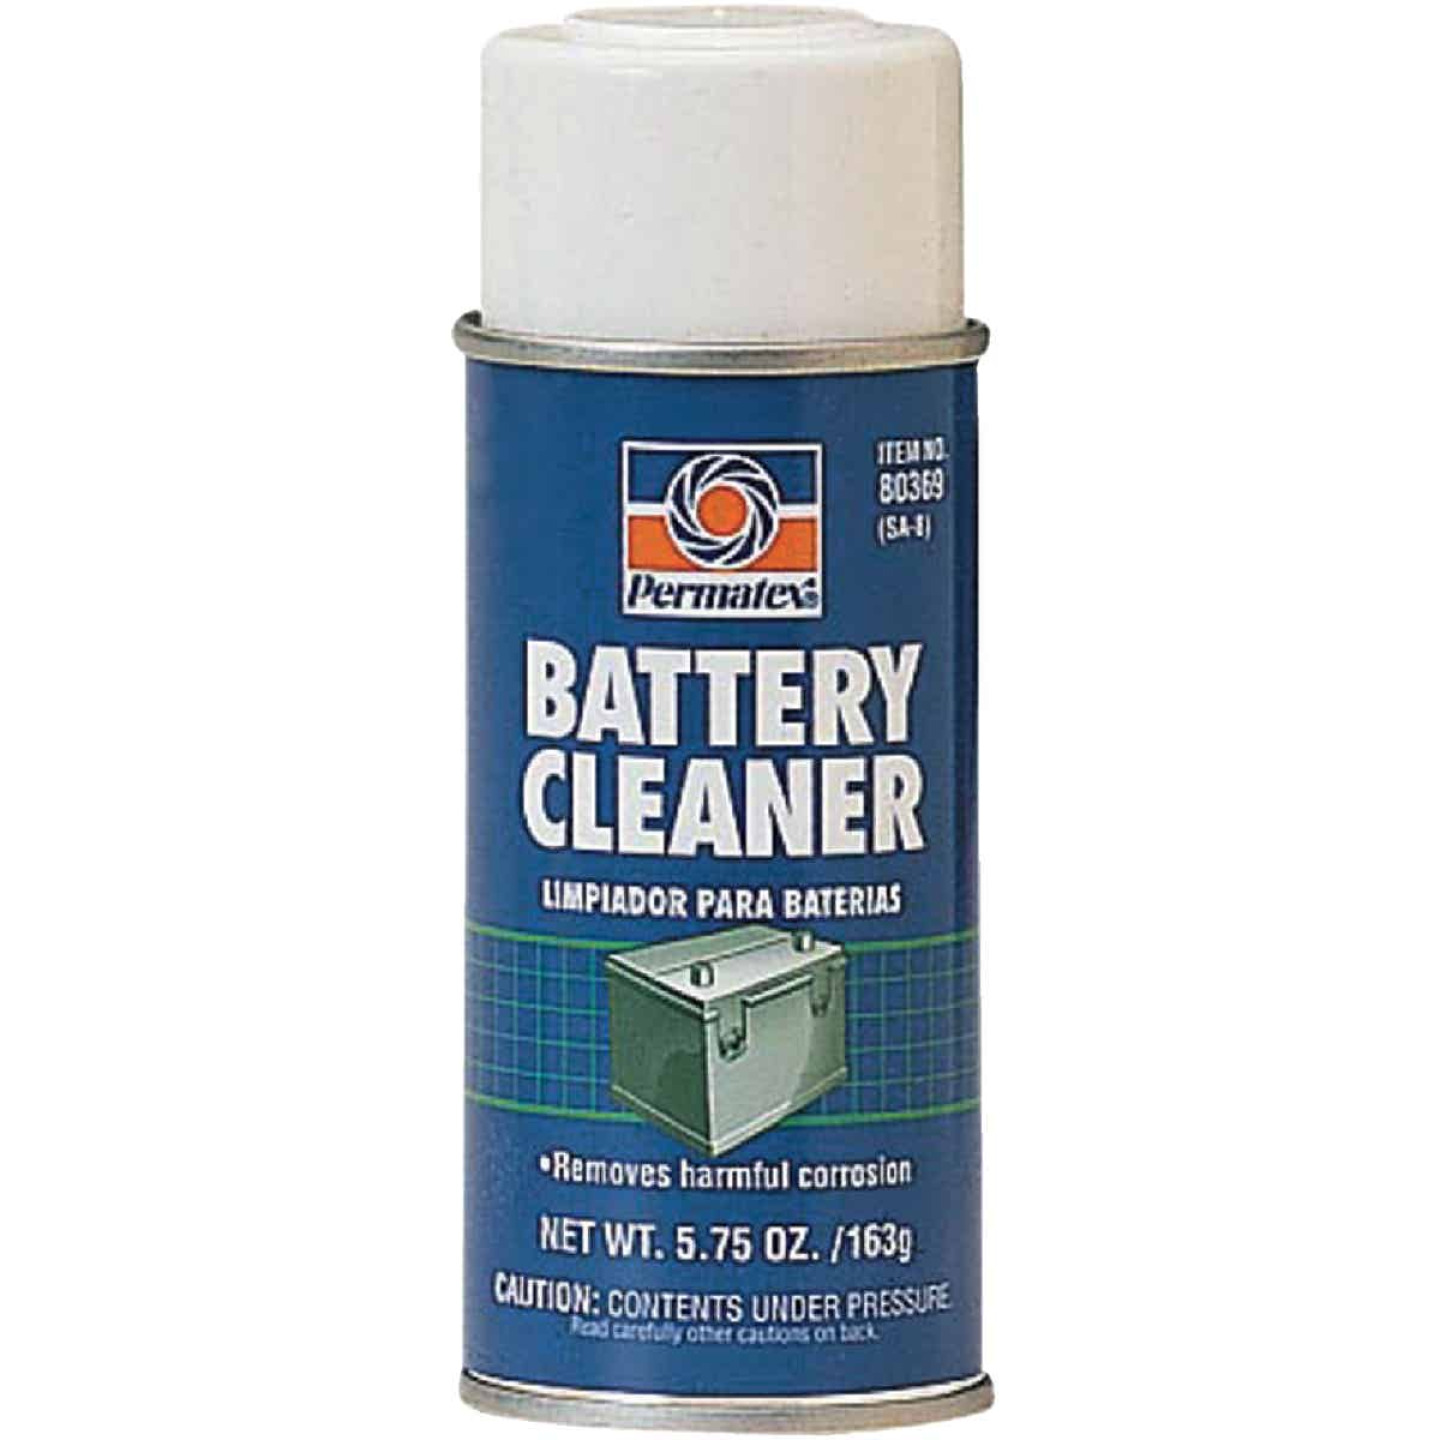 Permatex 5.75 Oz Aerosol Battery Cleaner Image 1